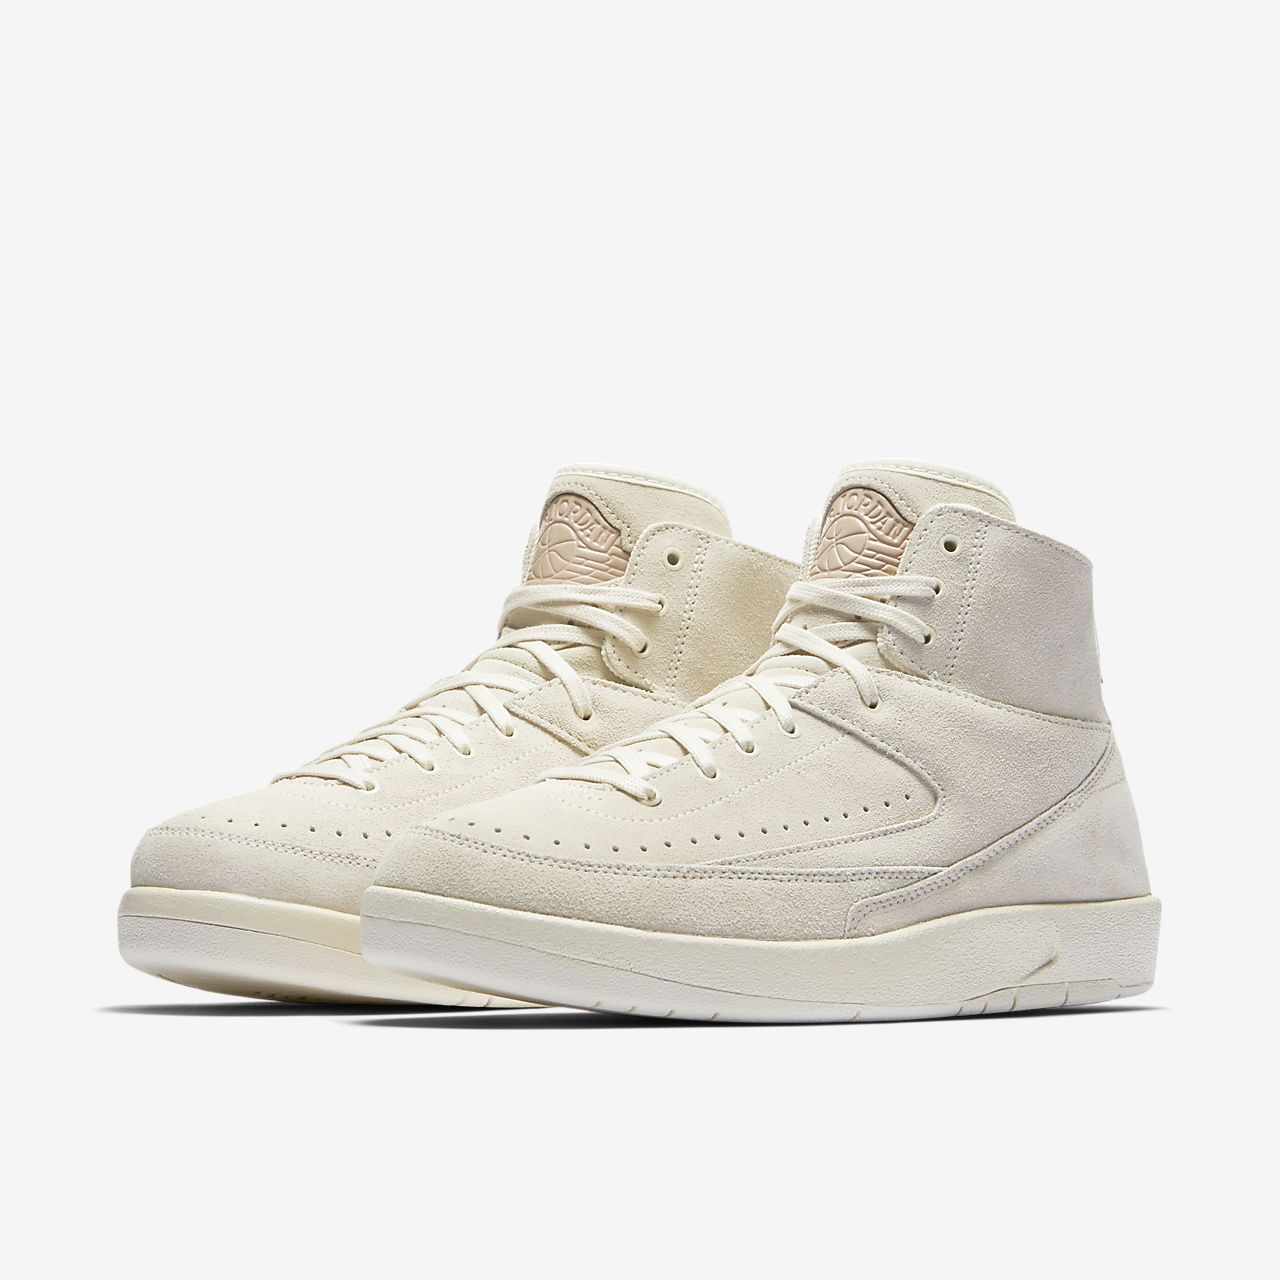 new style 140ef 8d94b ... Sko Air Jordan 2 Retro Decon för män